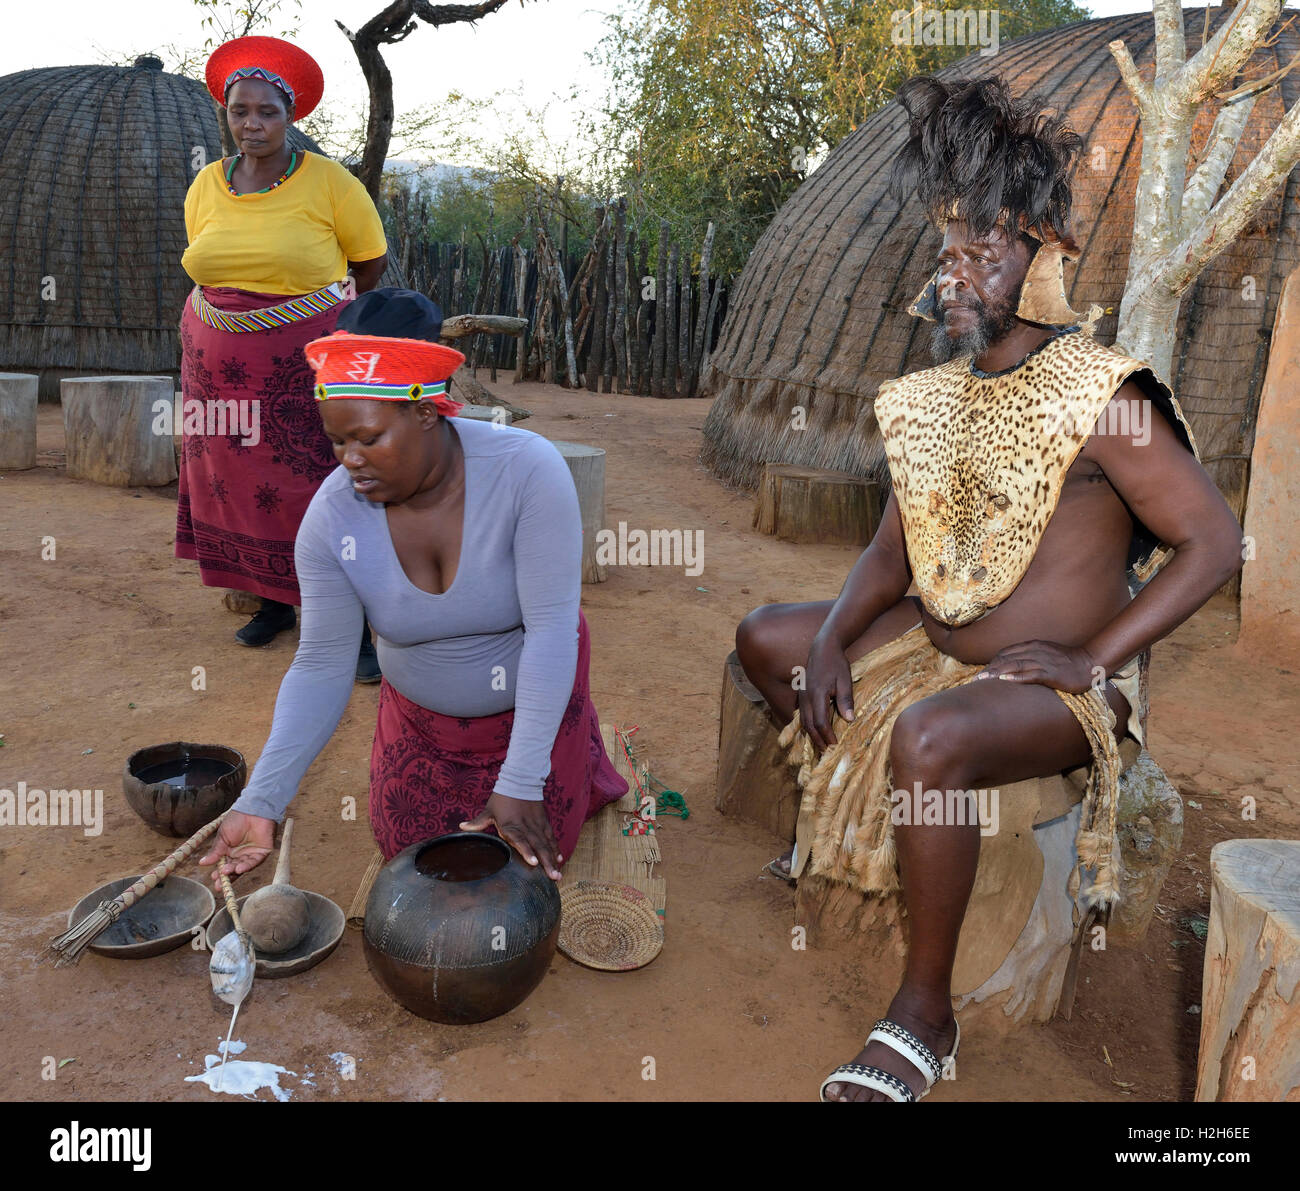 Shakaland Zulu troupe members re-enacting Zulu domestic life - serving amasi (curdled milk),with the Zulu King seated. - Stock Image